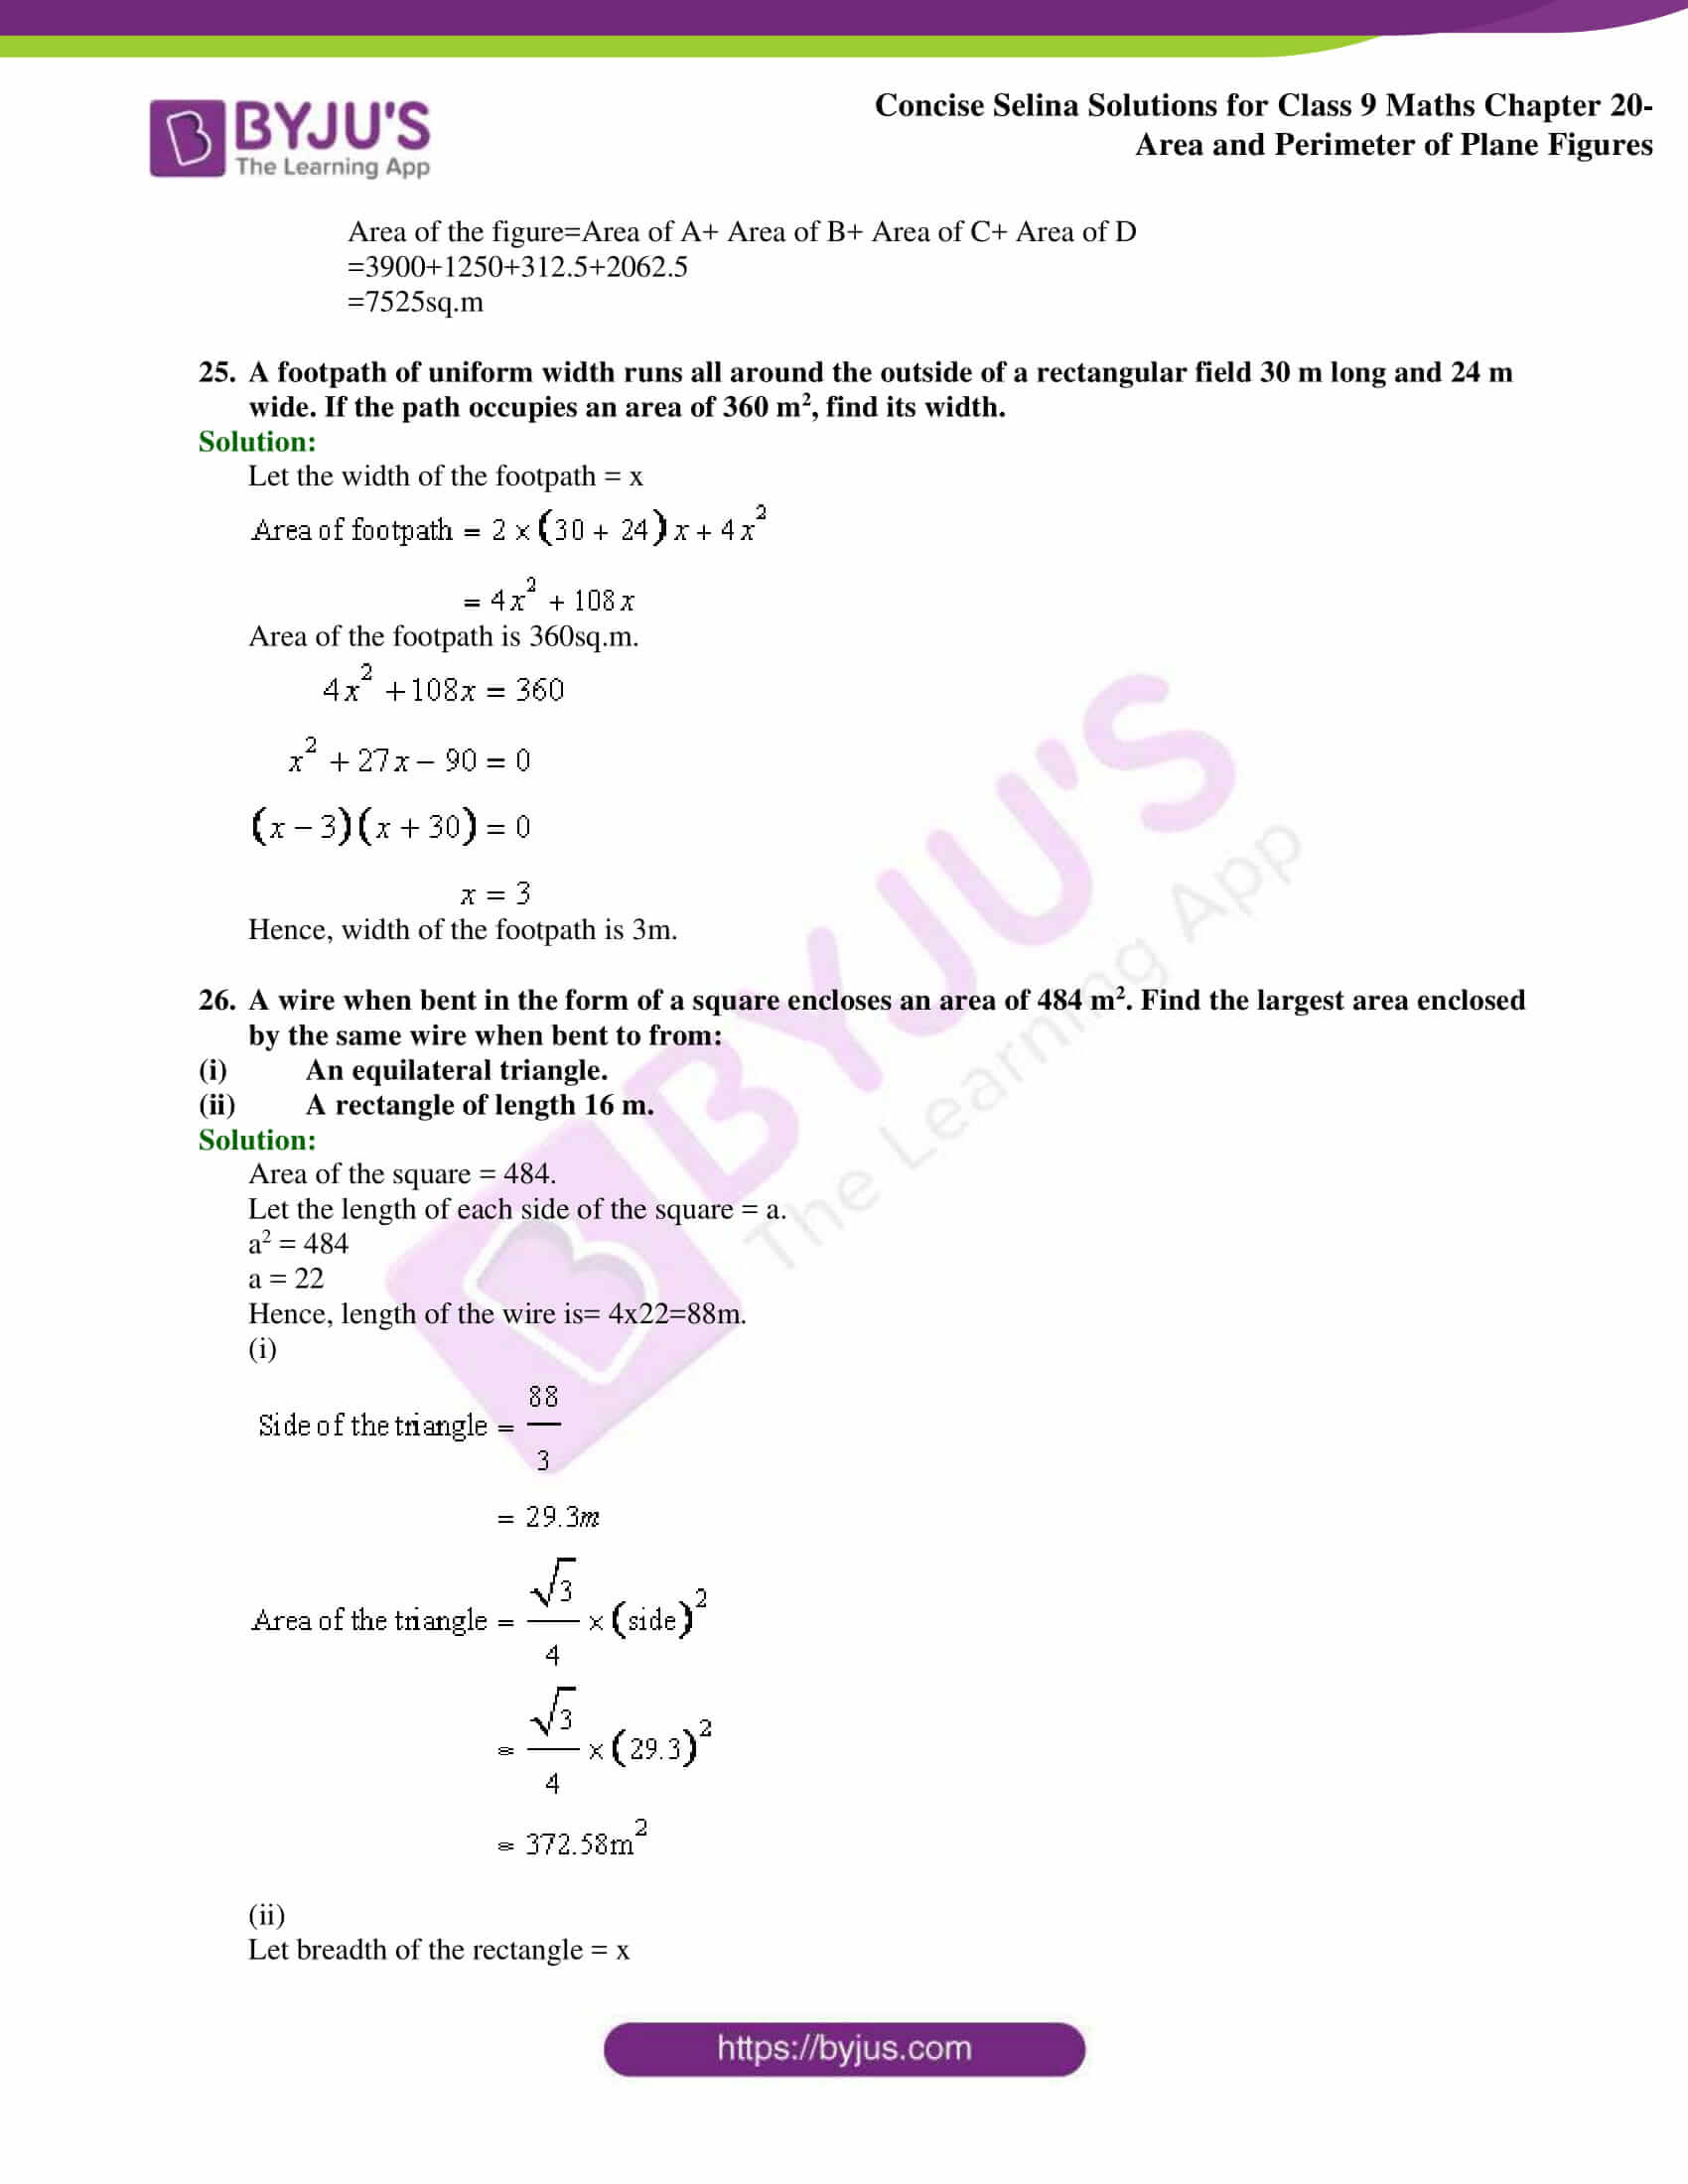 Concise Selina Solutions Class 9 Maths Chapter 20 Area and Perimeter of Plane part 24